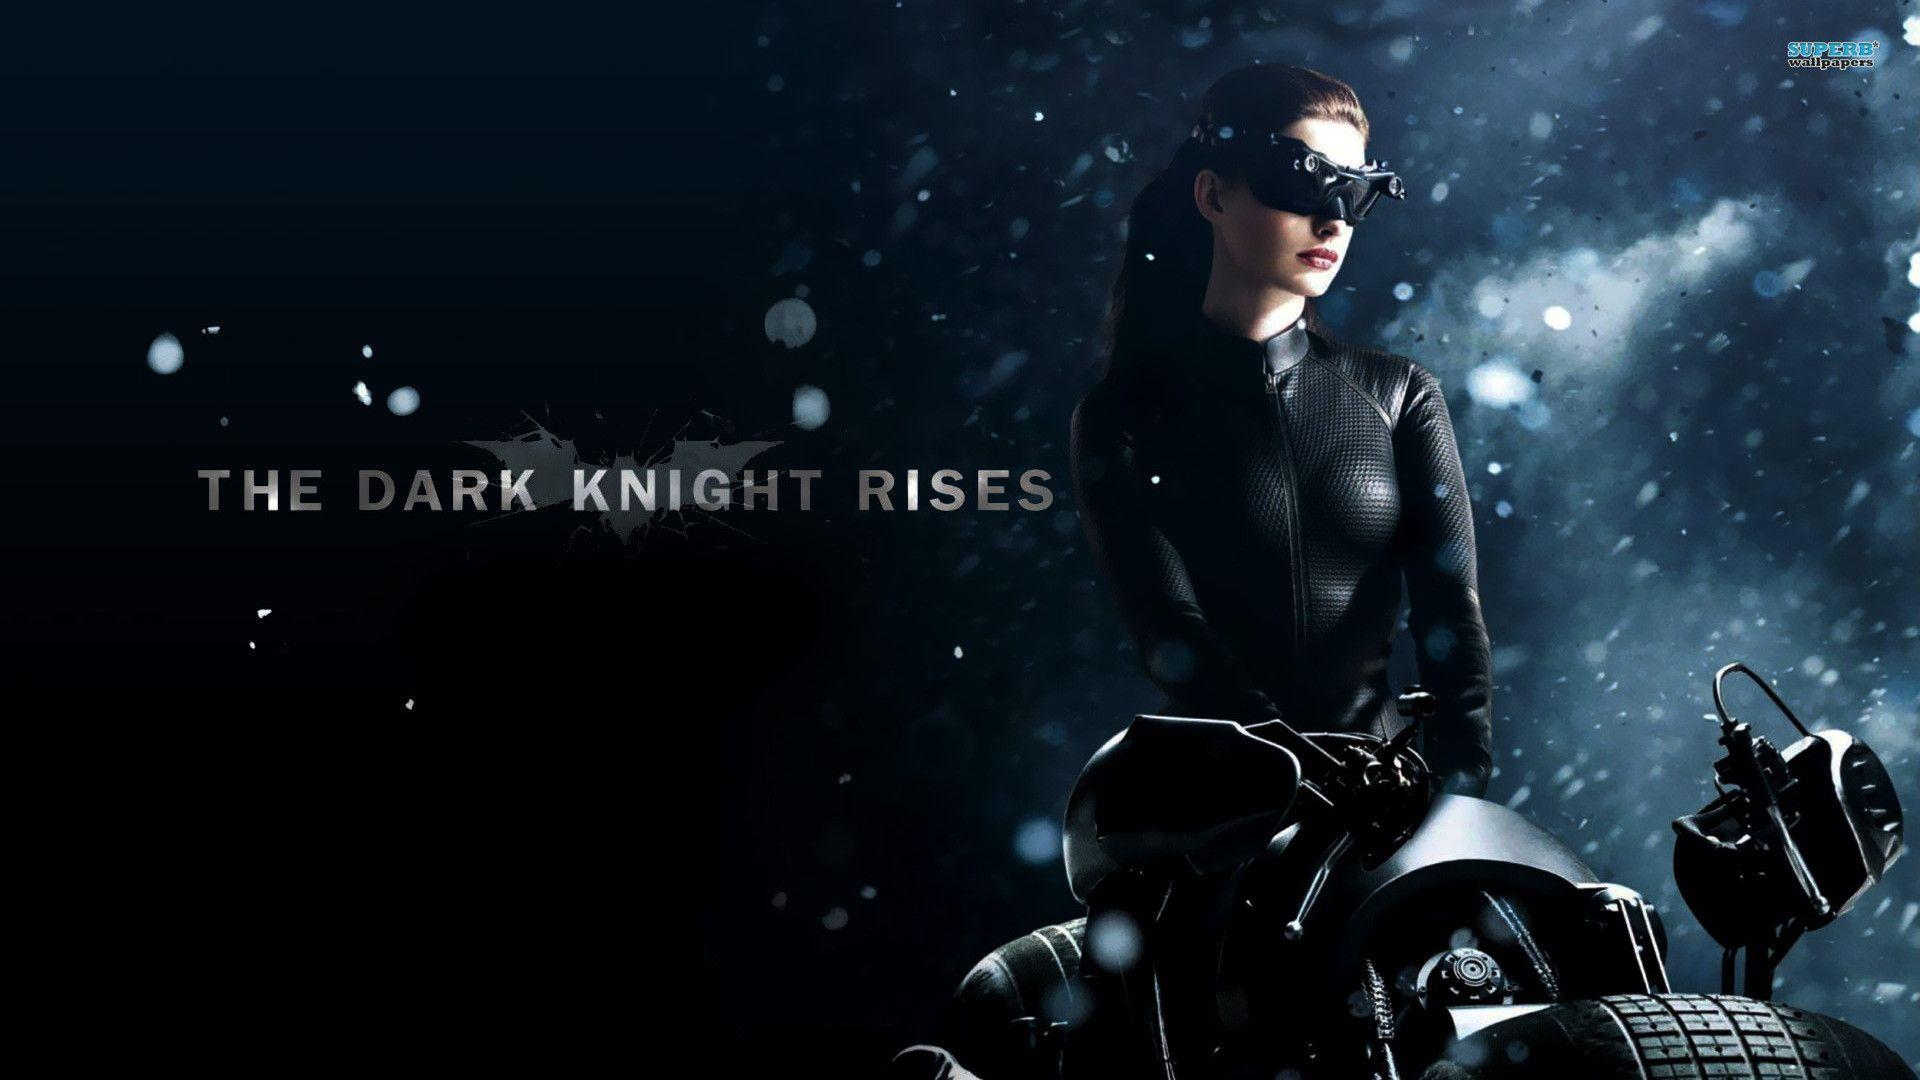 Catwoman - The Dark Knight Rises wallpaper - Movie wallpapers - #